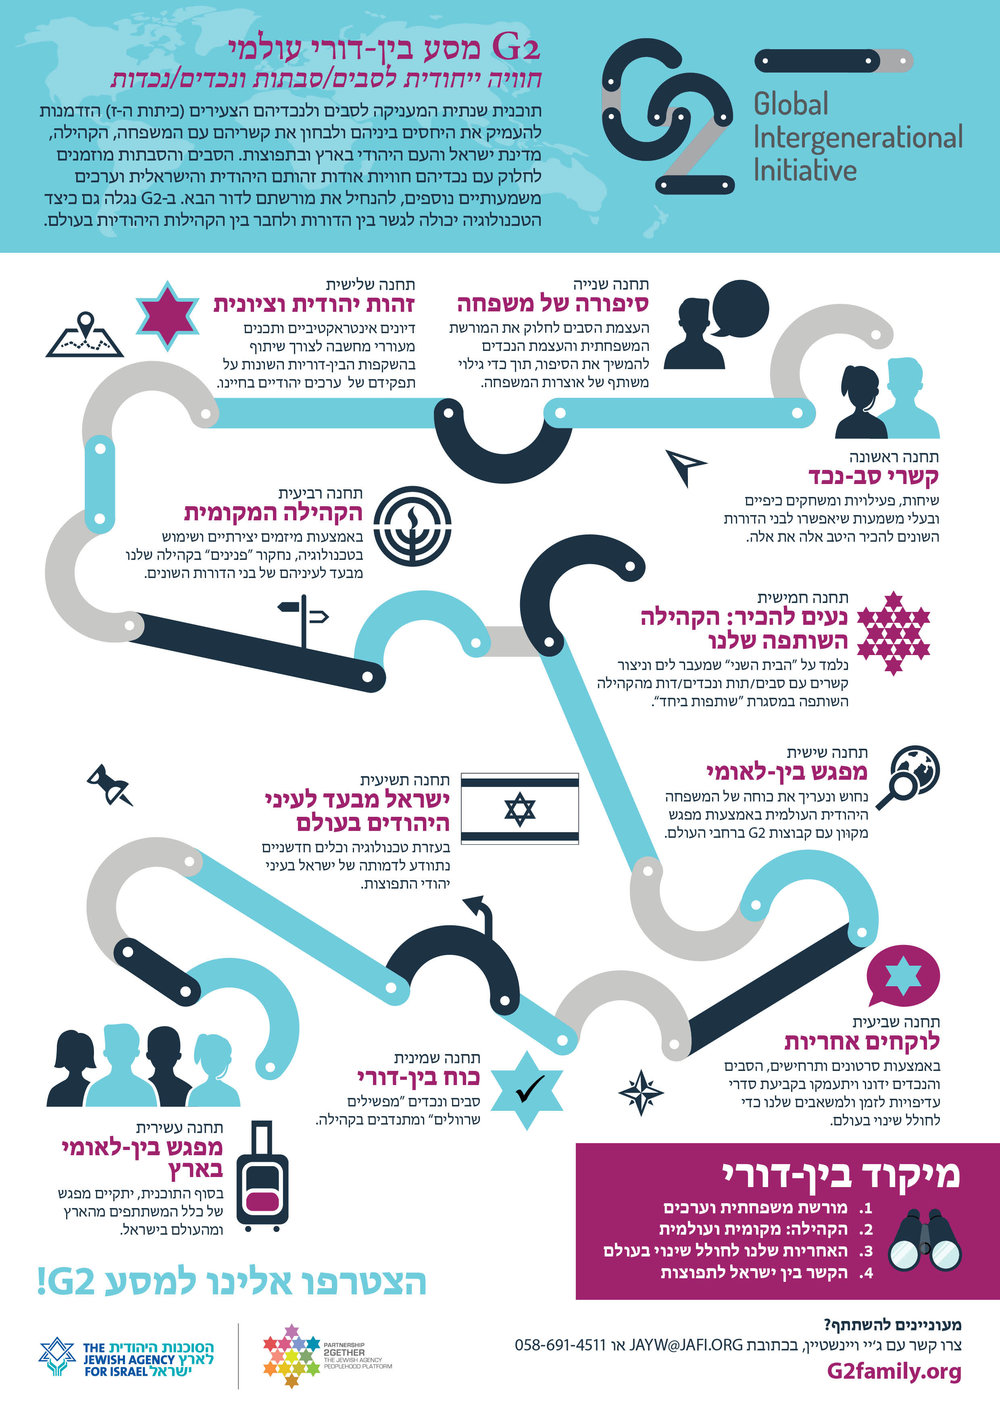 Hebrew_G2 Journey Infographic_V7_A4.jpg